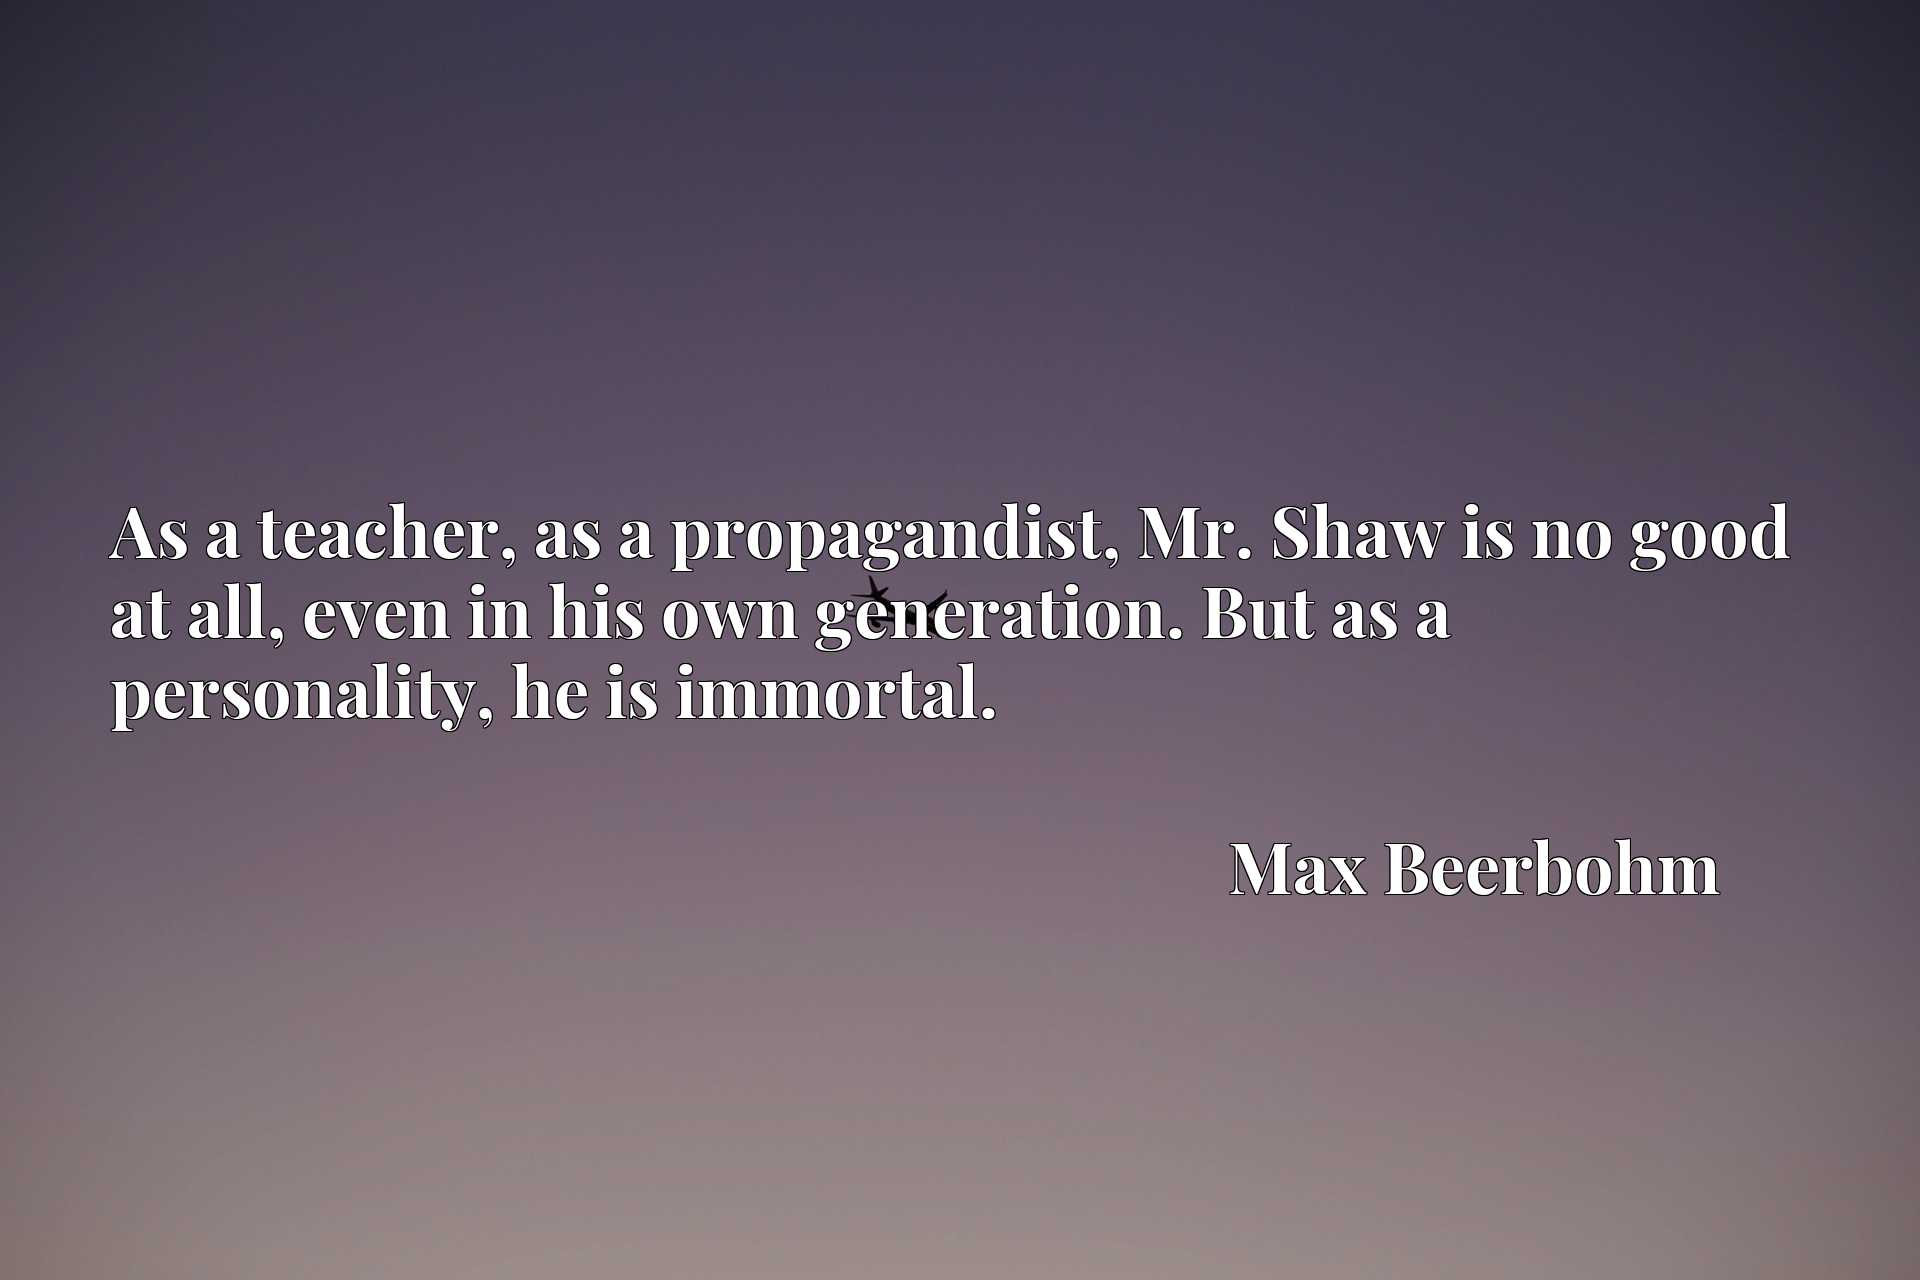 Quote Picture :As a teacher, as a propagandist, Mr. Shaw is no good at all, even in his own generation. But as a personality, he is immortal.